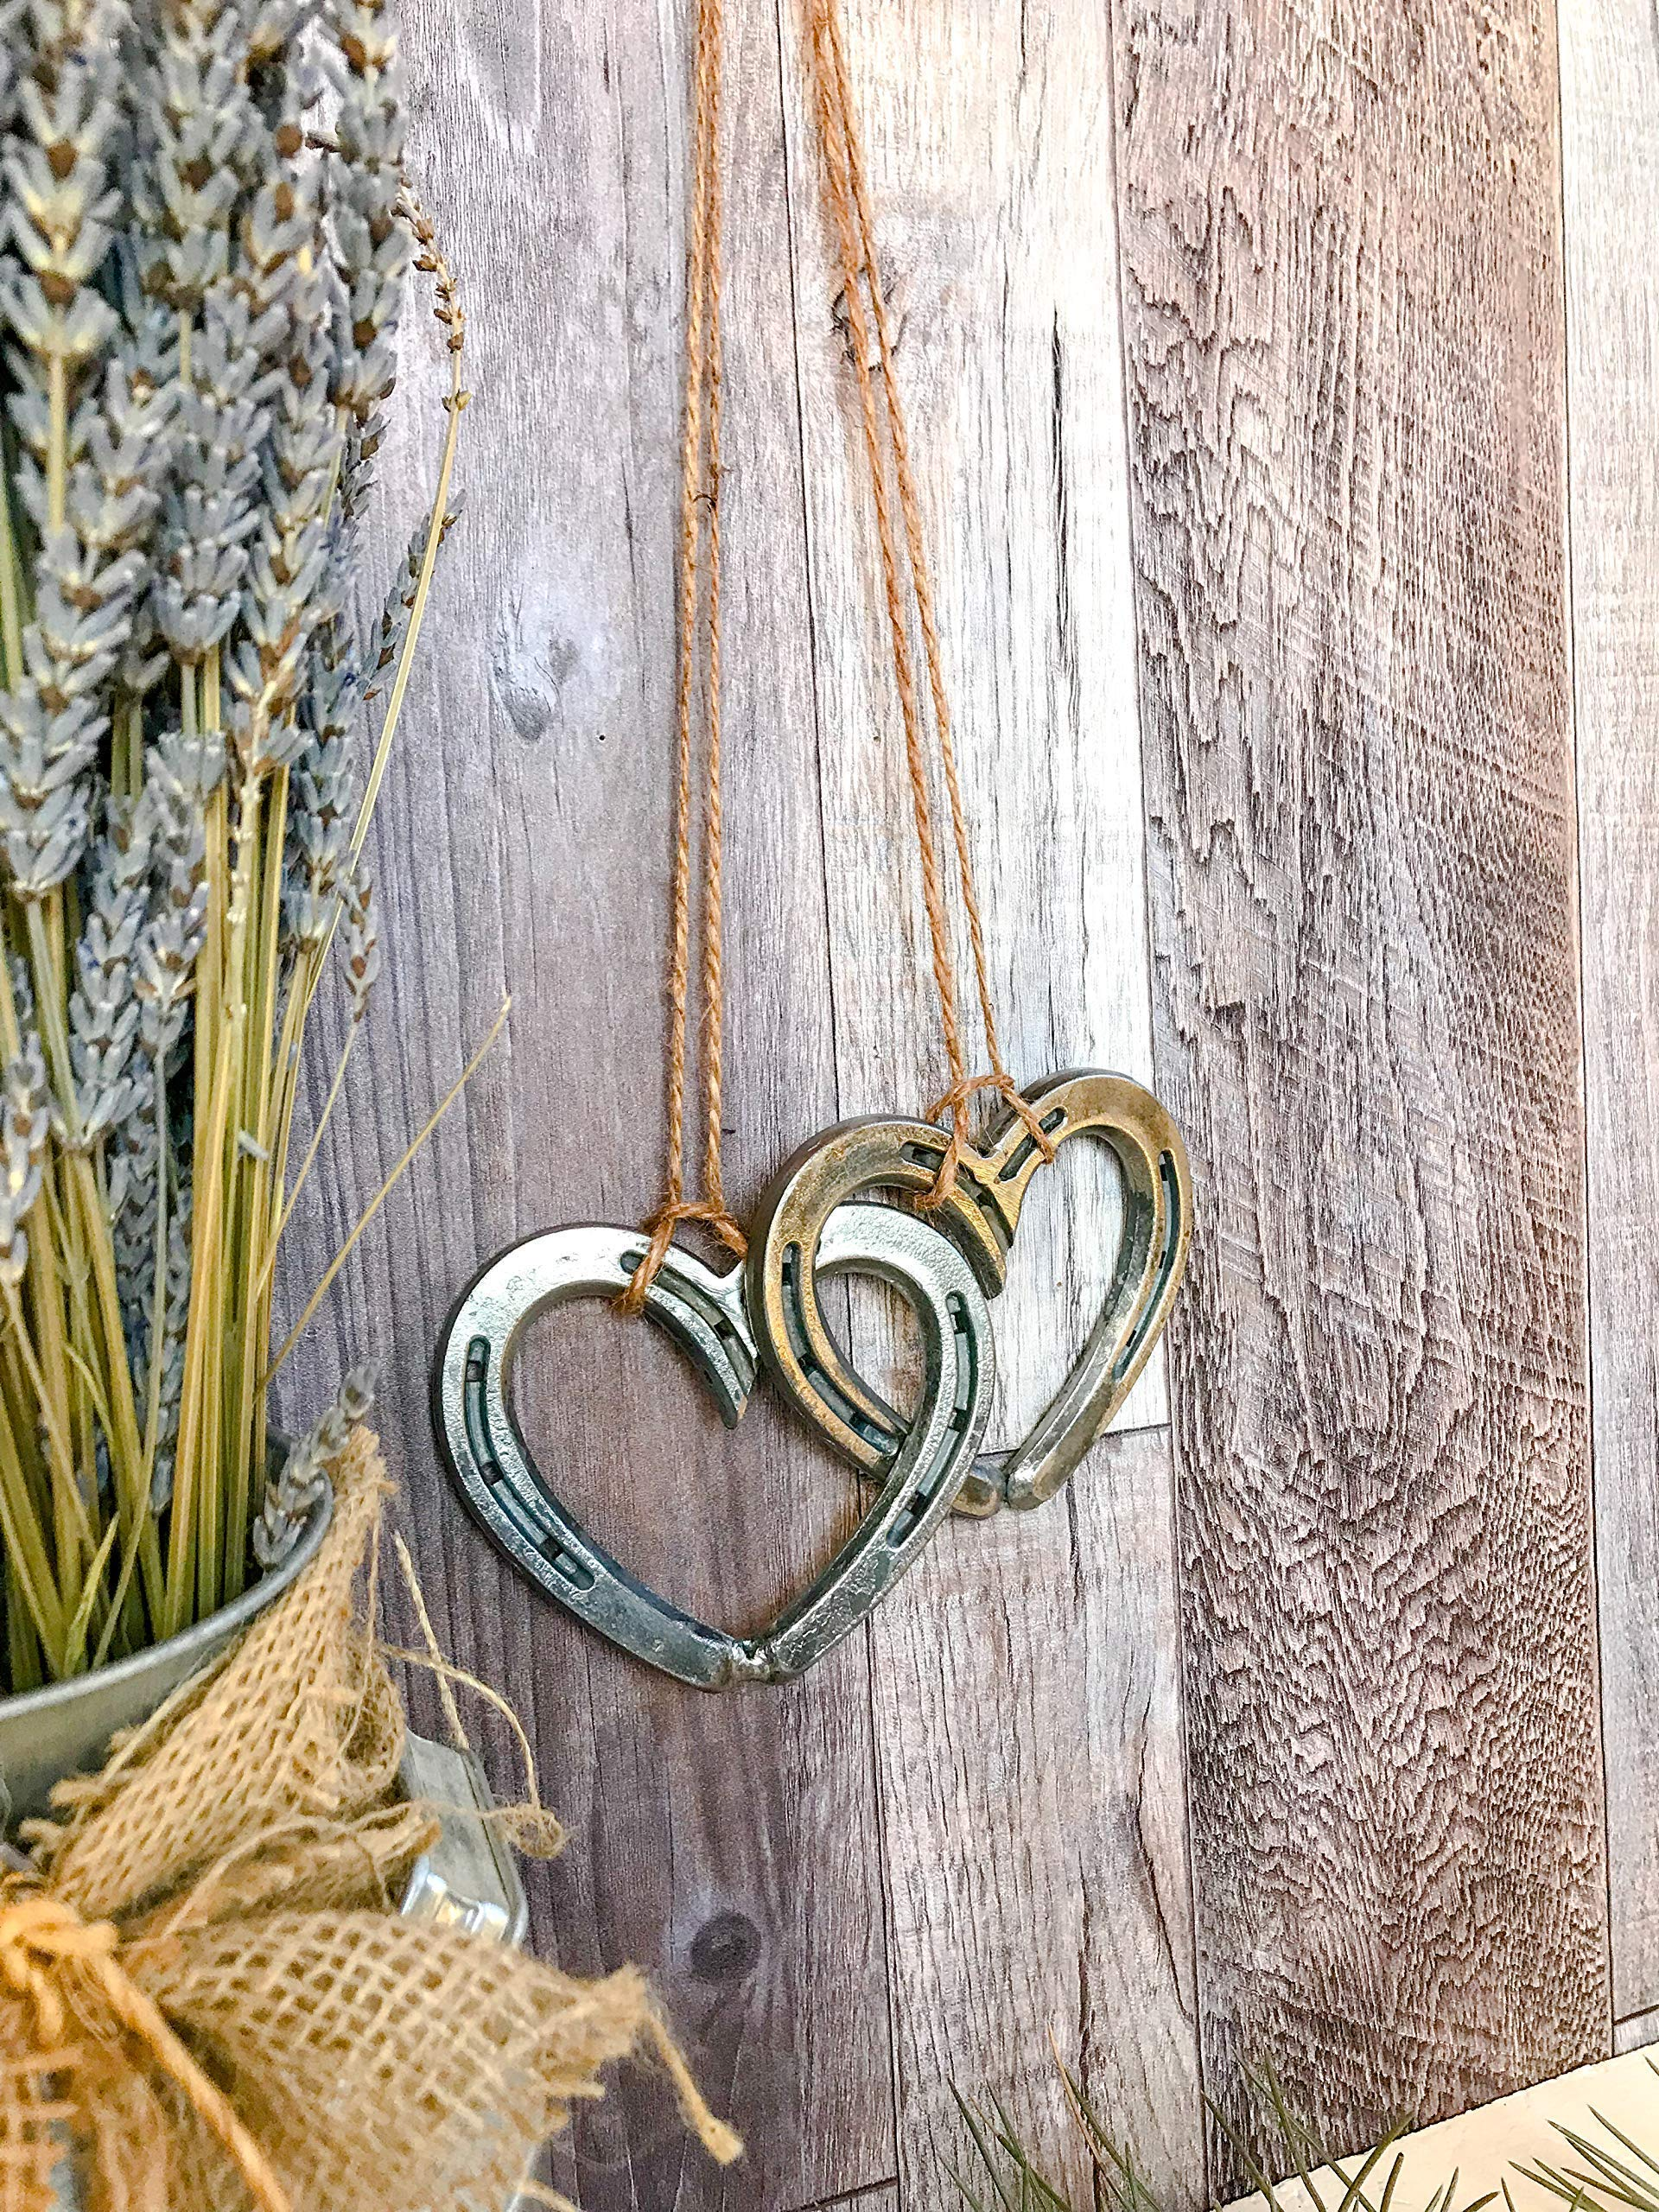 Metal Wall Heart Decor for Farmhouse, Horseshoe Home Decor, Rustic Home Decor, Wedding gifts, Love Gifts for Wife, Country Home Decor by Rustic and Country